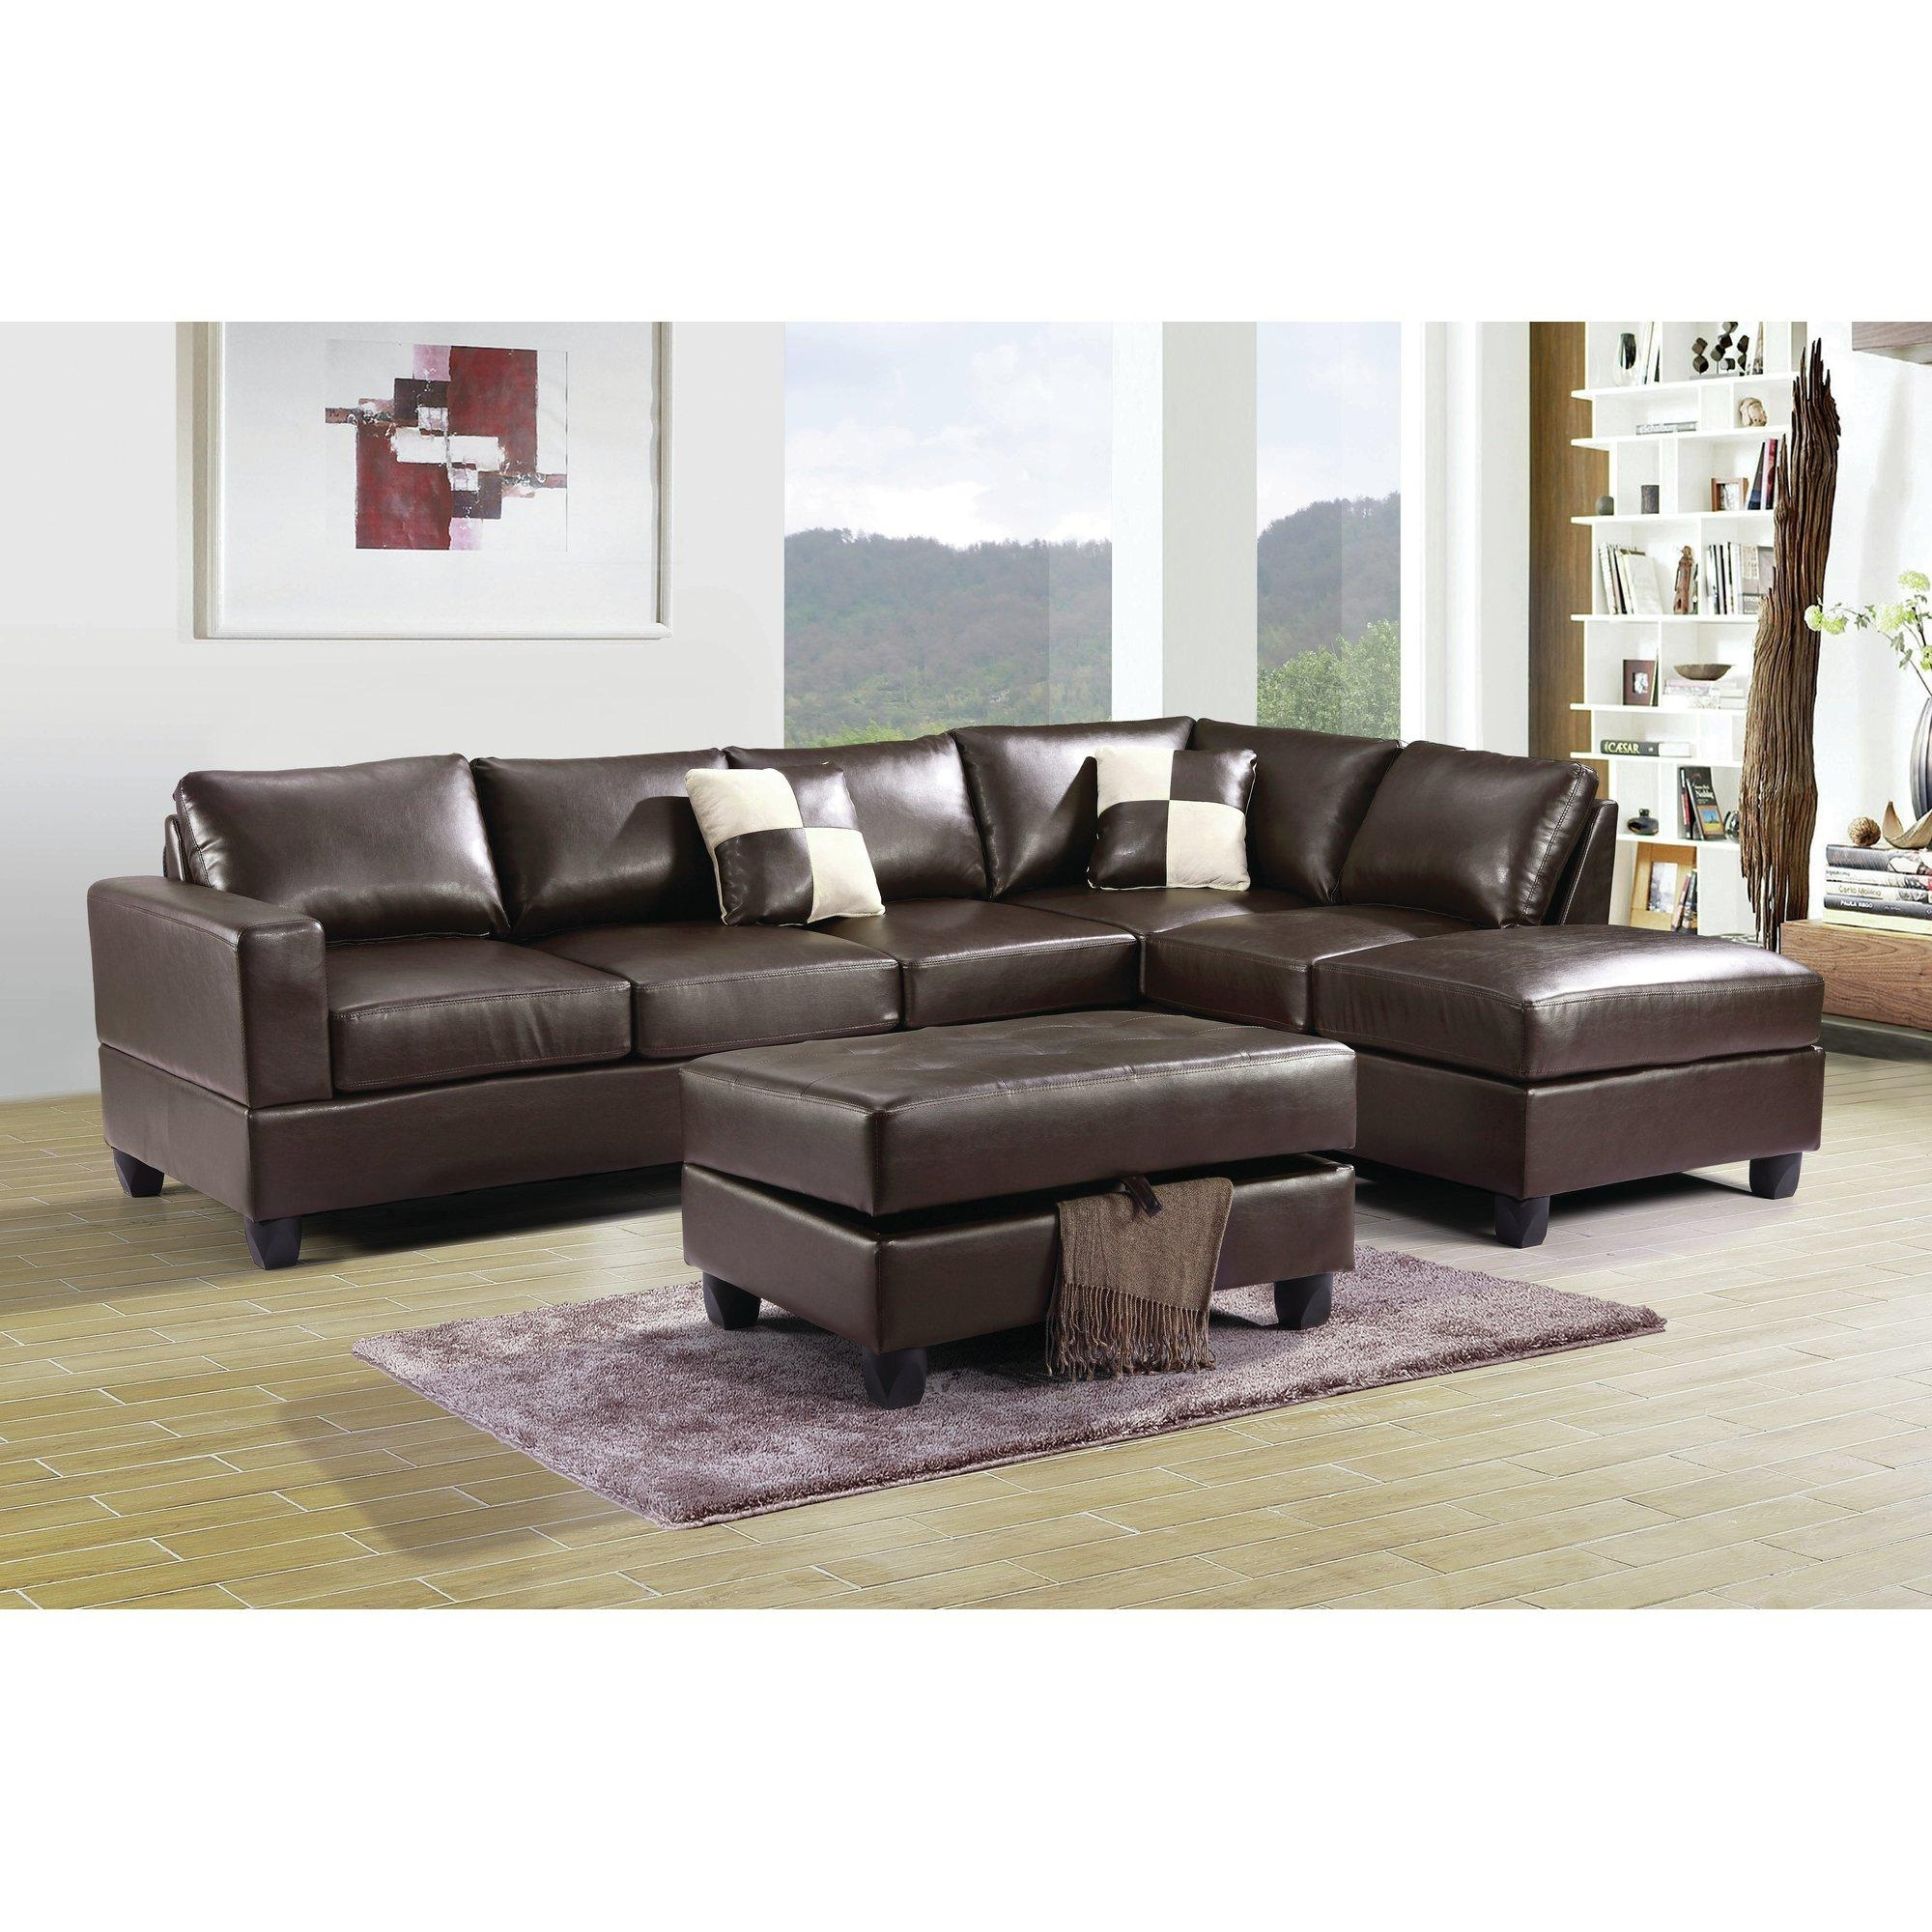 Furniture: Sectional Sofas Amazon | Tufted Sectional Sofa Chaise With Regard To Tufted Sectional Sofa Chaise (Image 5 of 20)